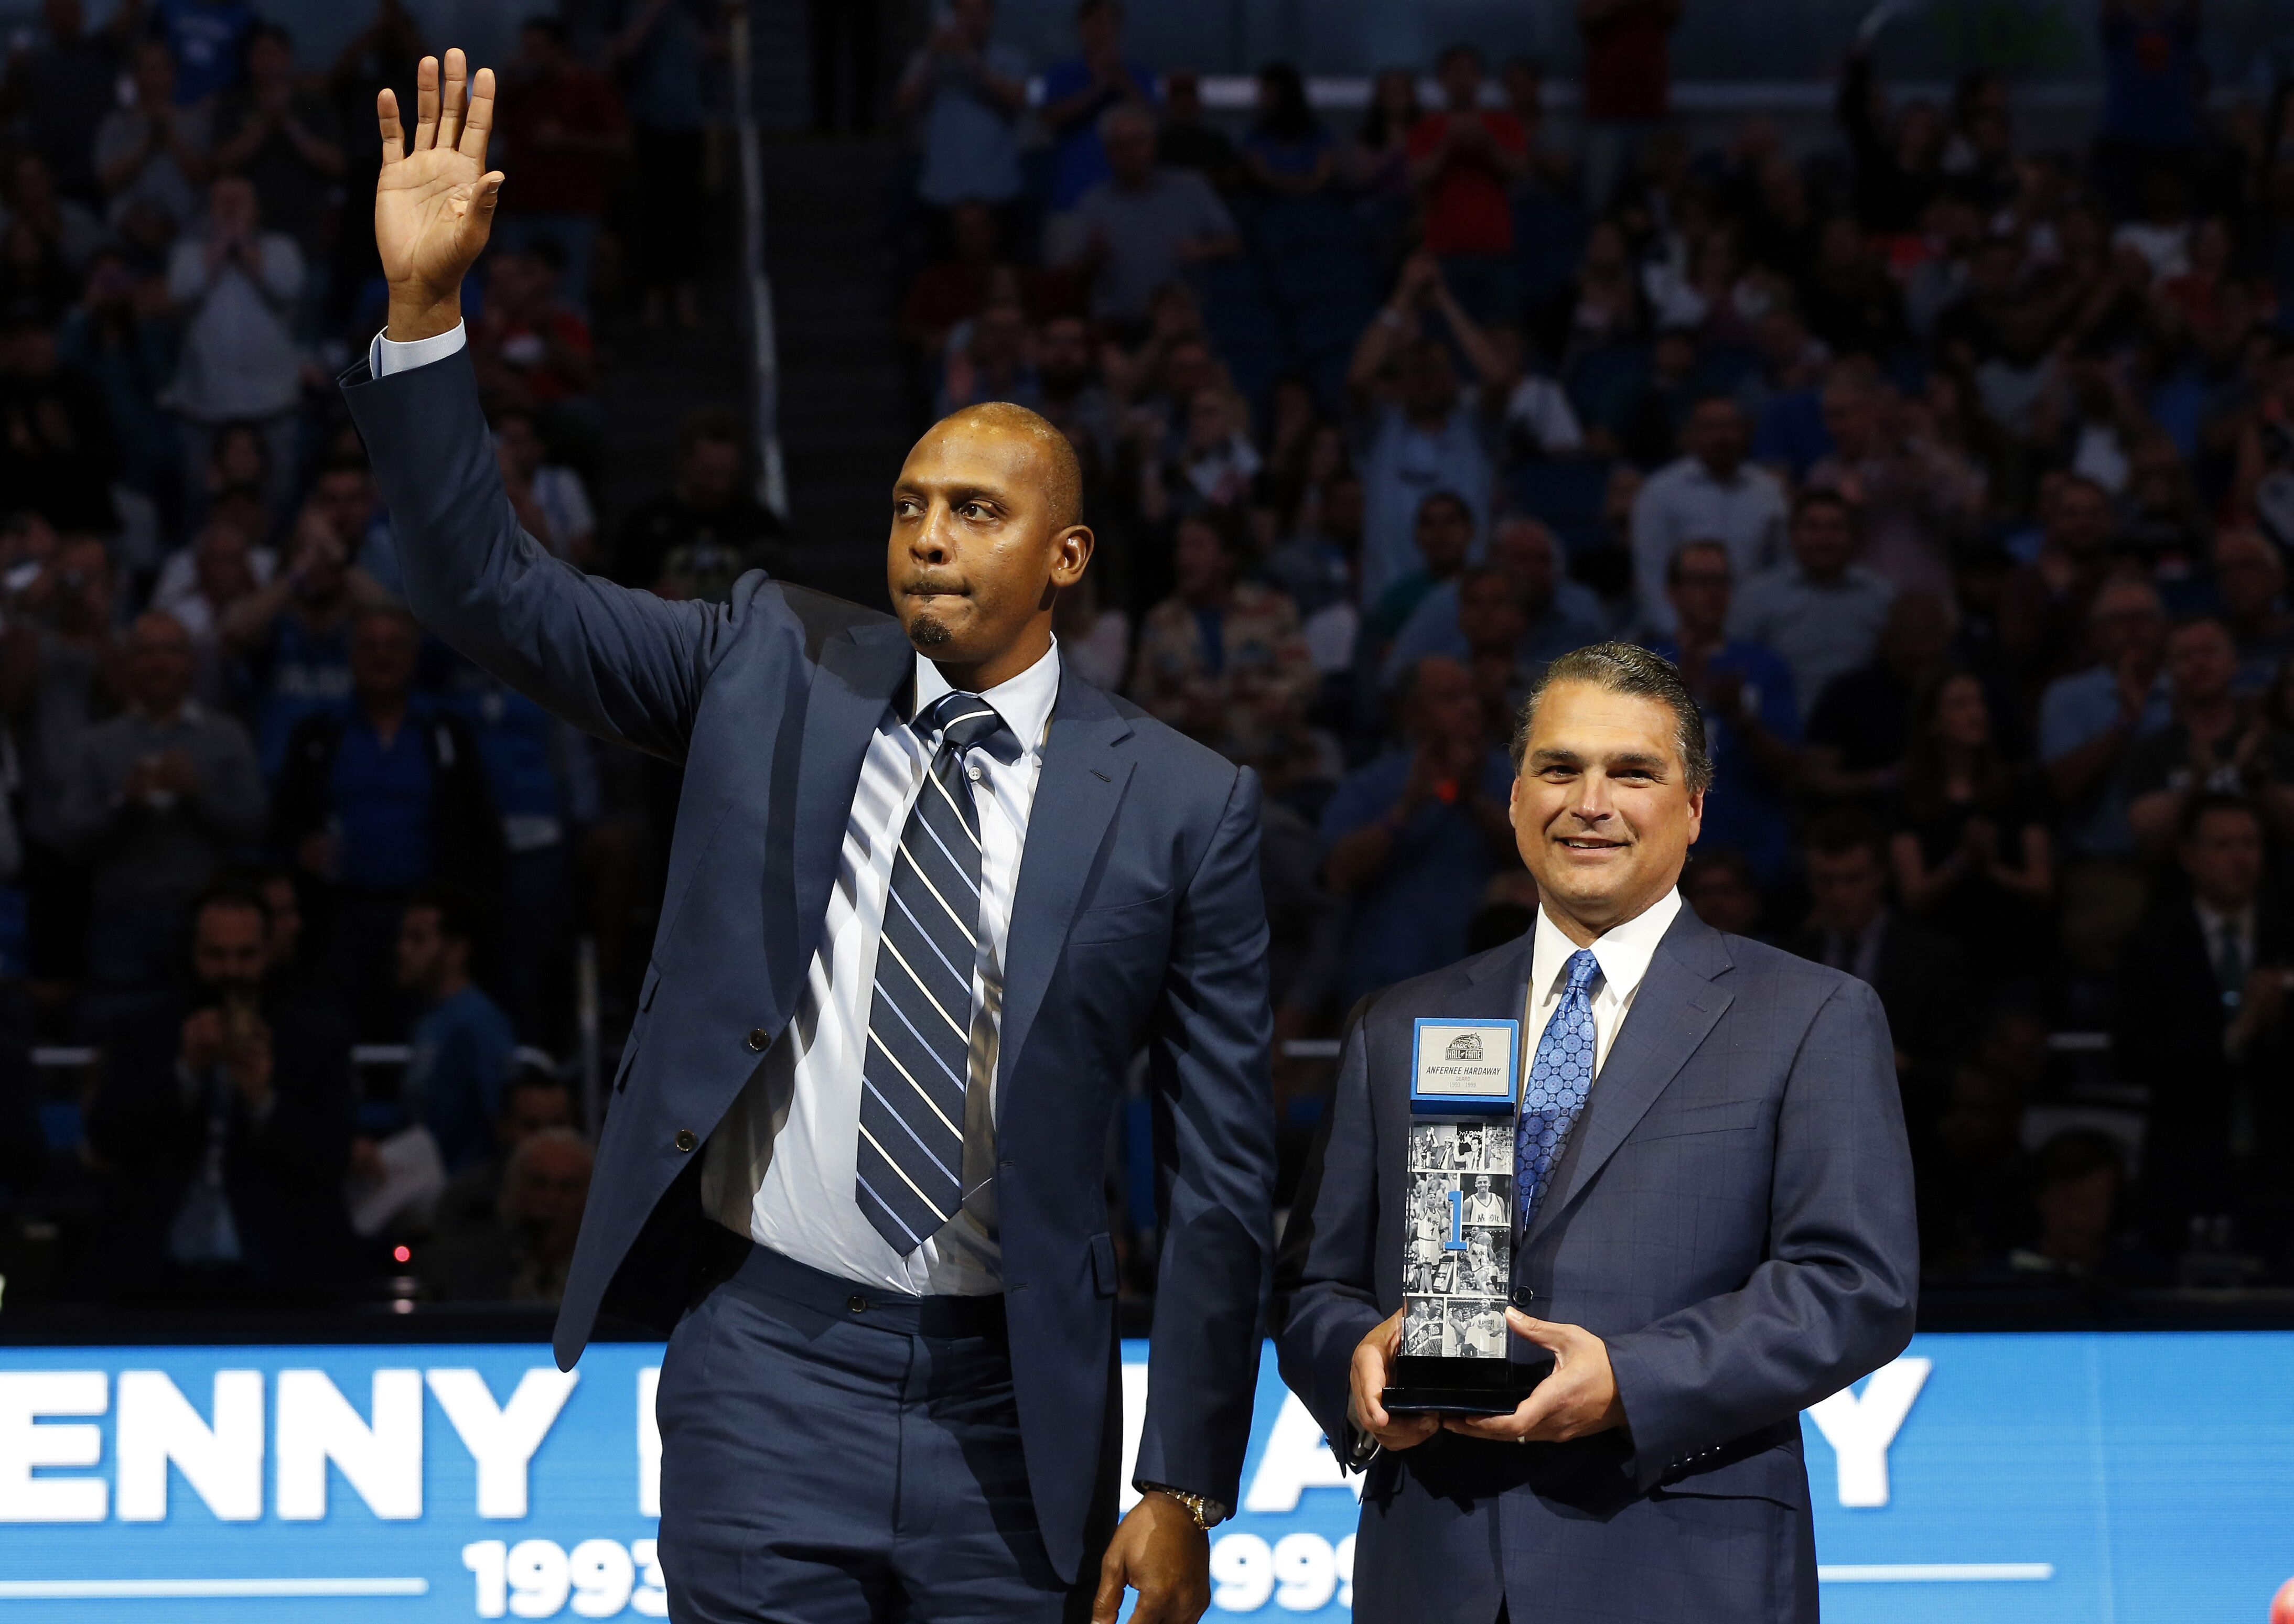 For Anfernee Hardaway Orlando will always be home